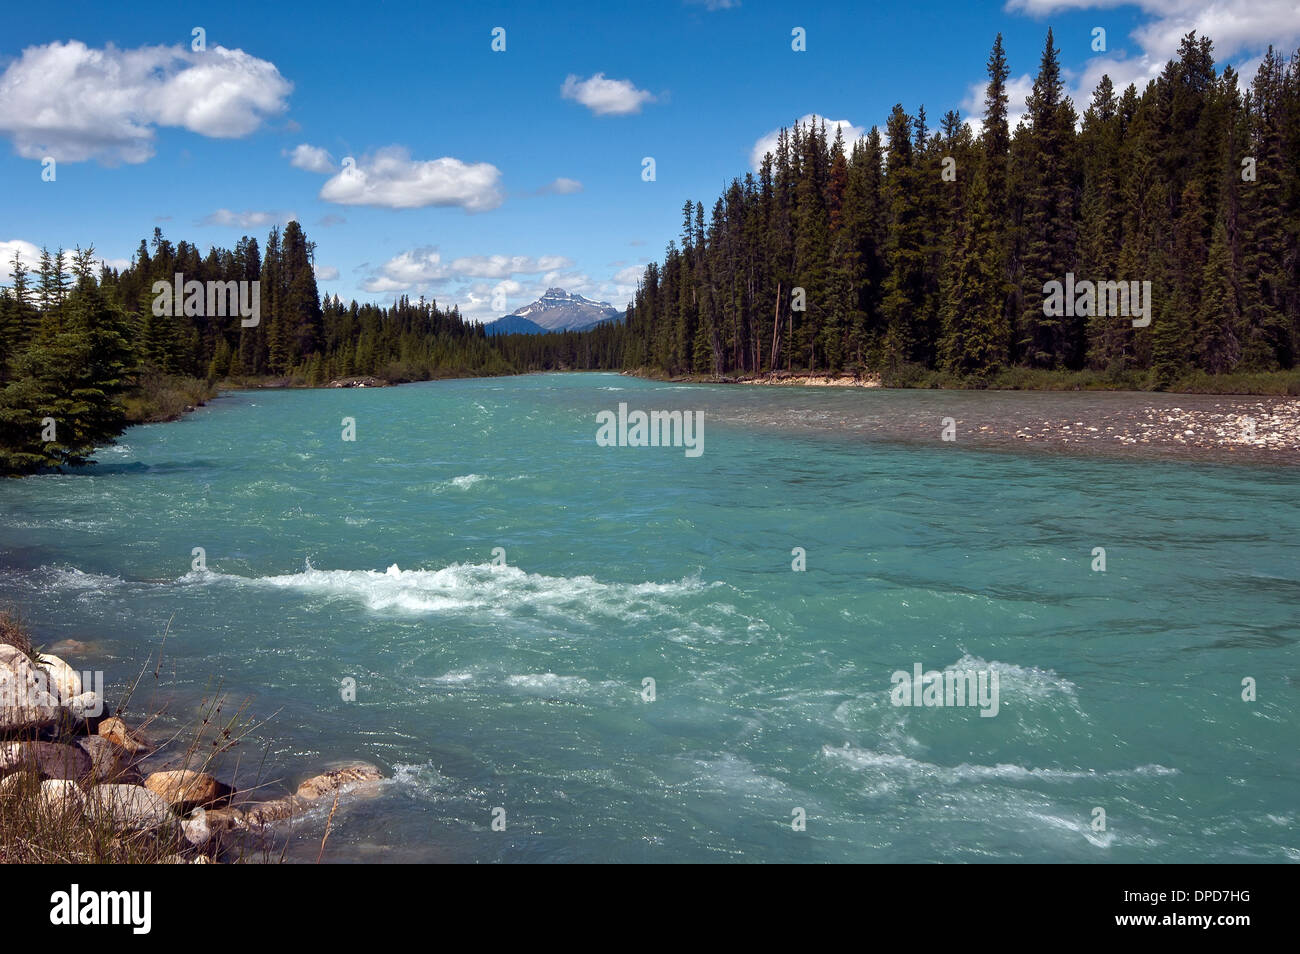 Bow River, Alberta, Canada Photo Stock